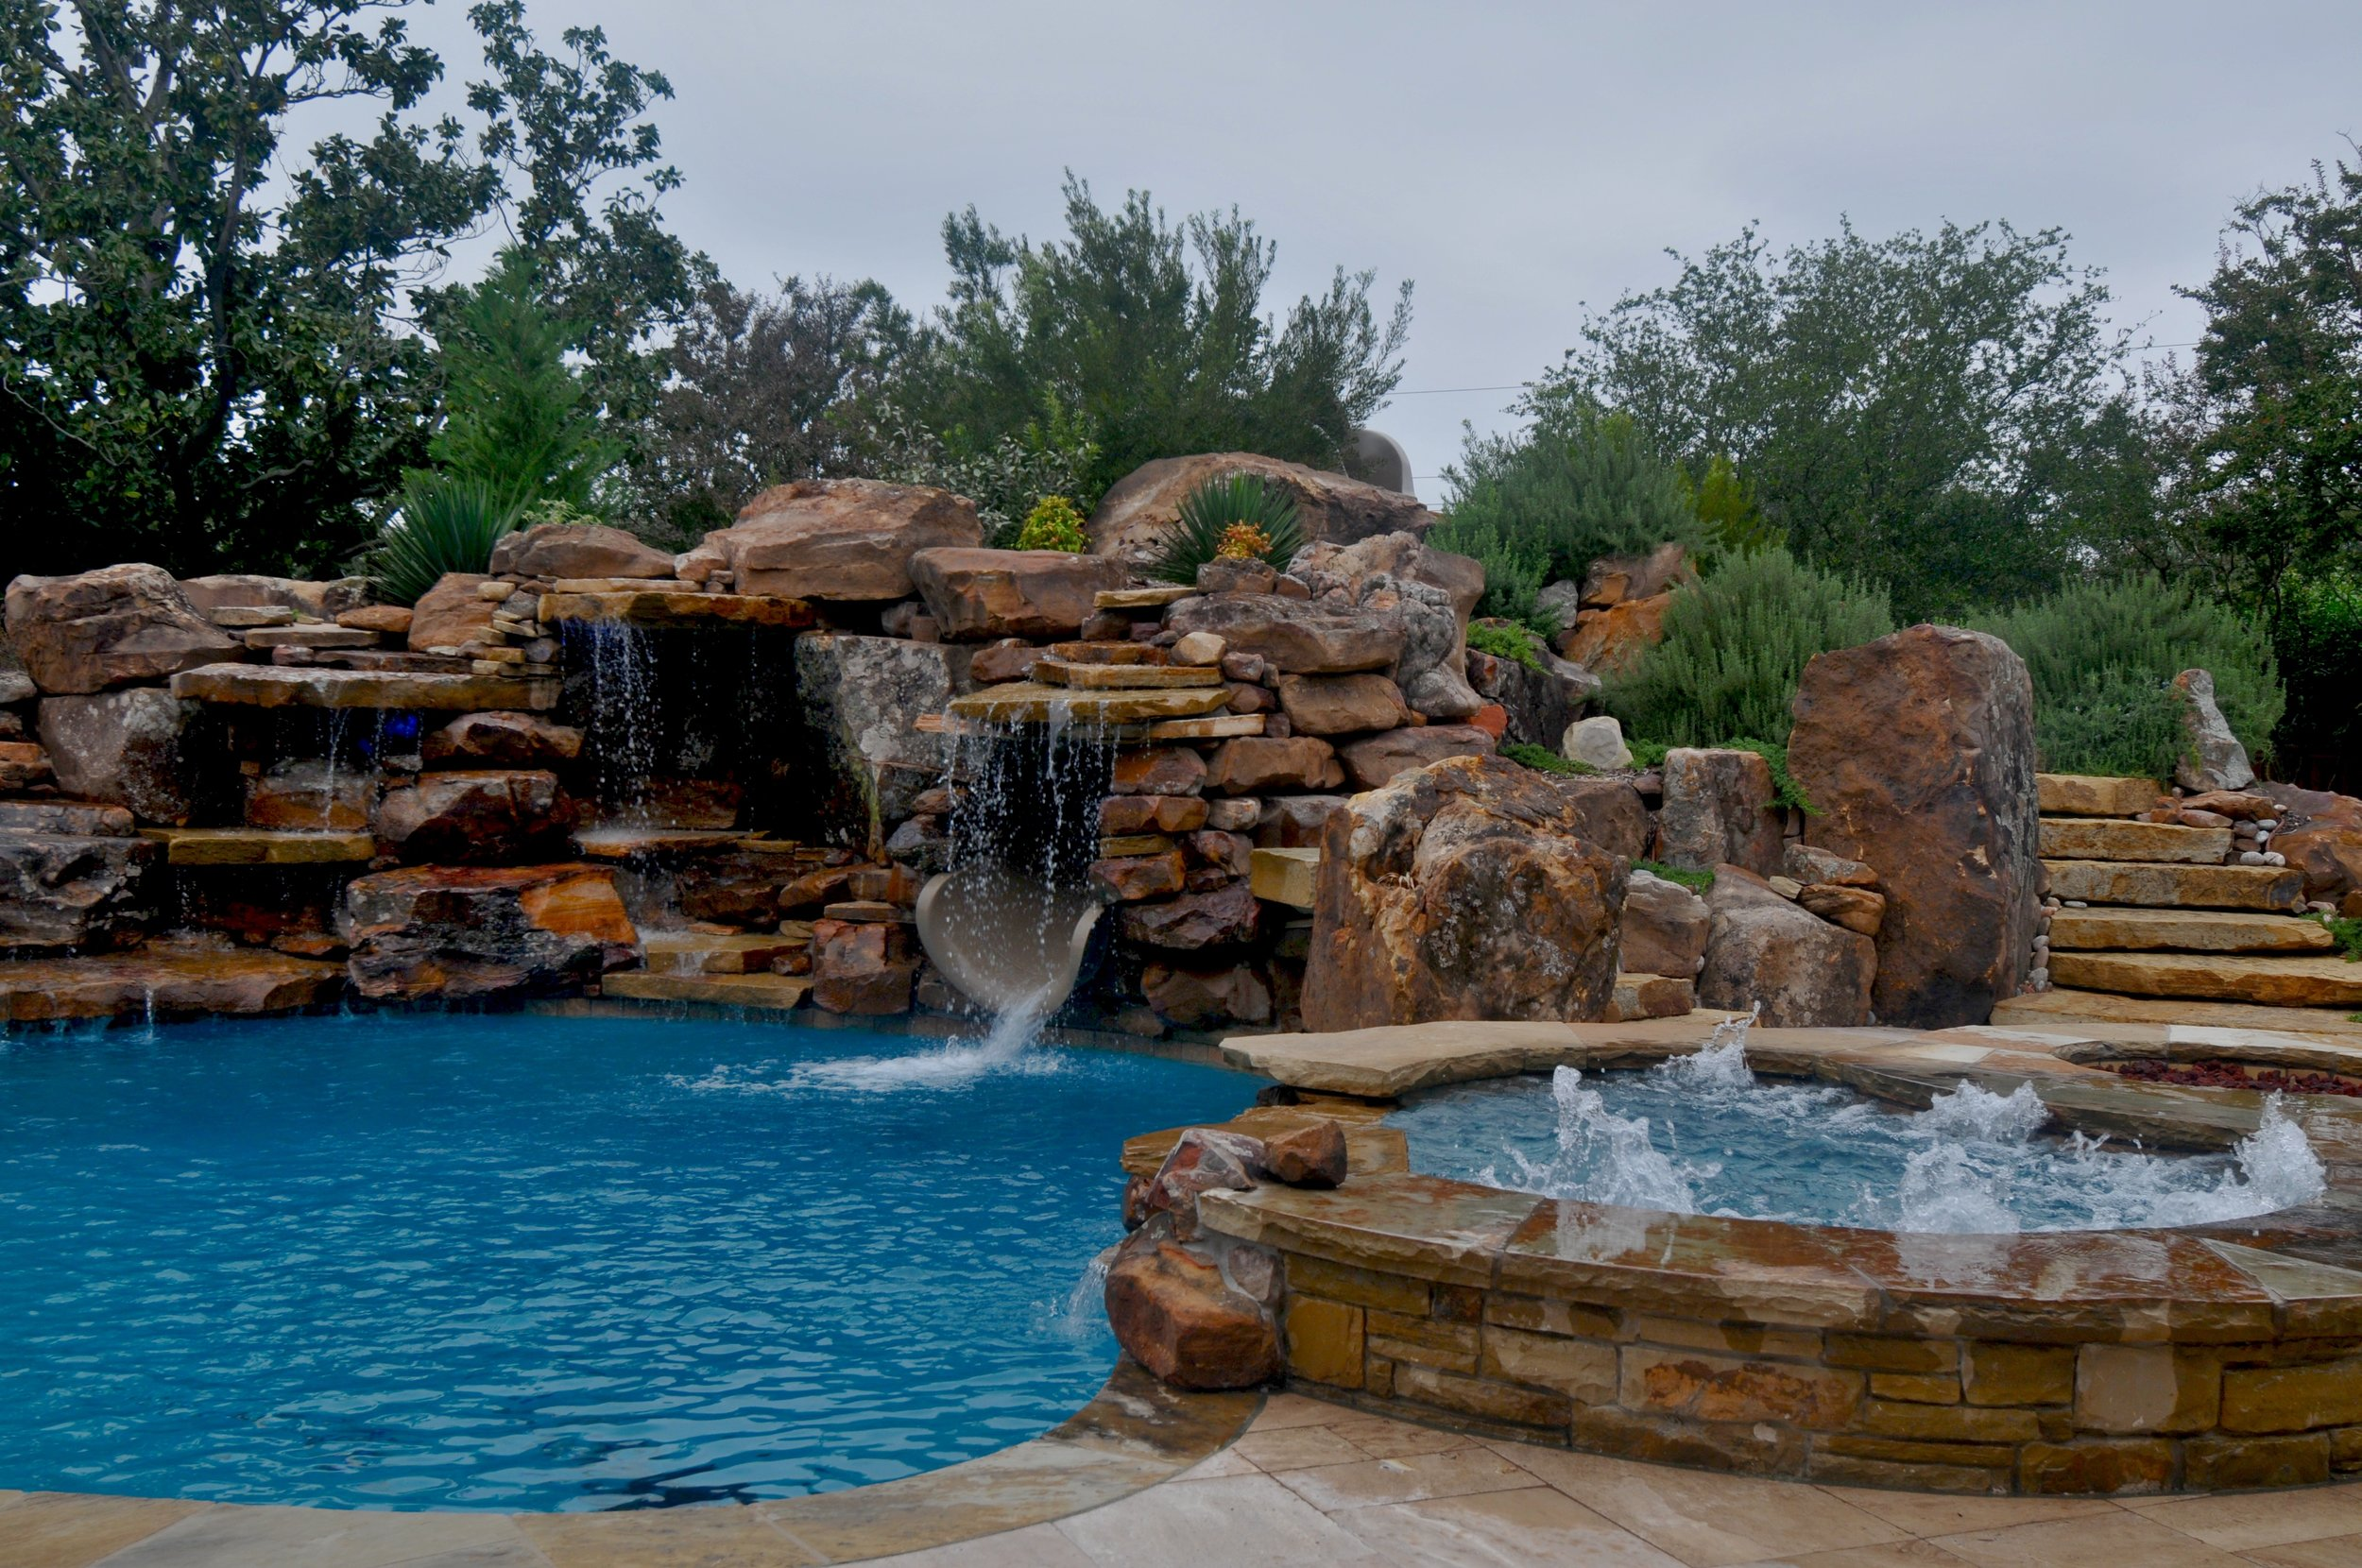 DSC_2242+Adjusted